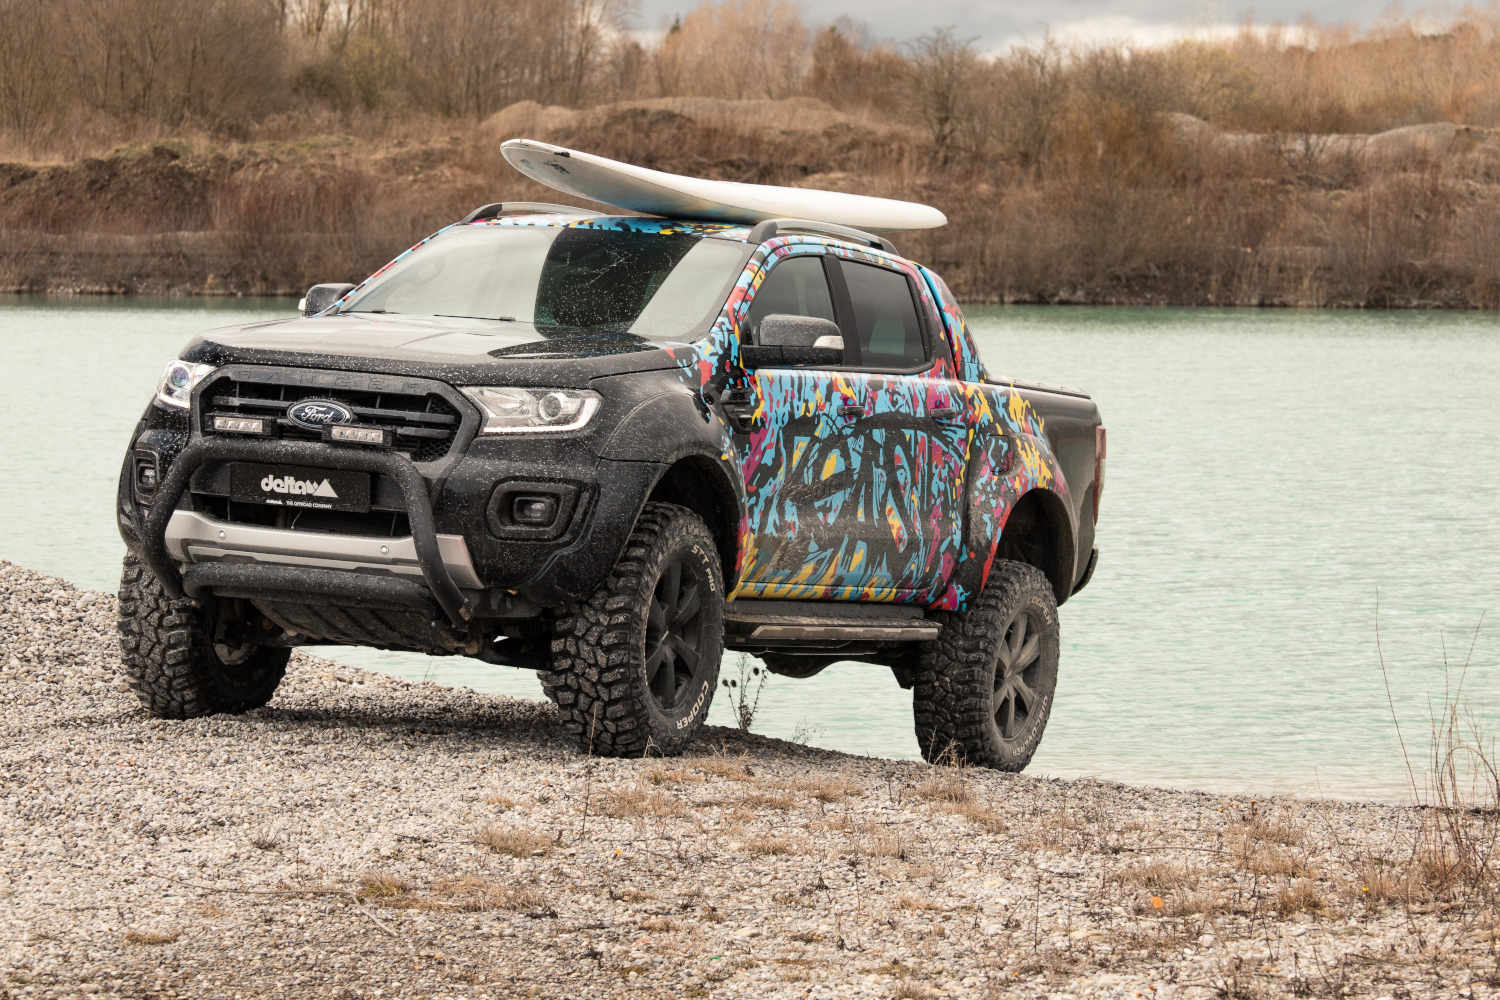 delta4x4 Offroad Tuning